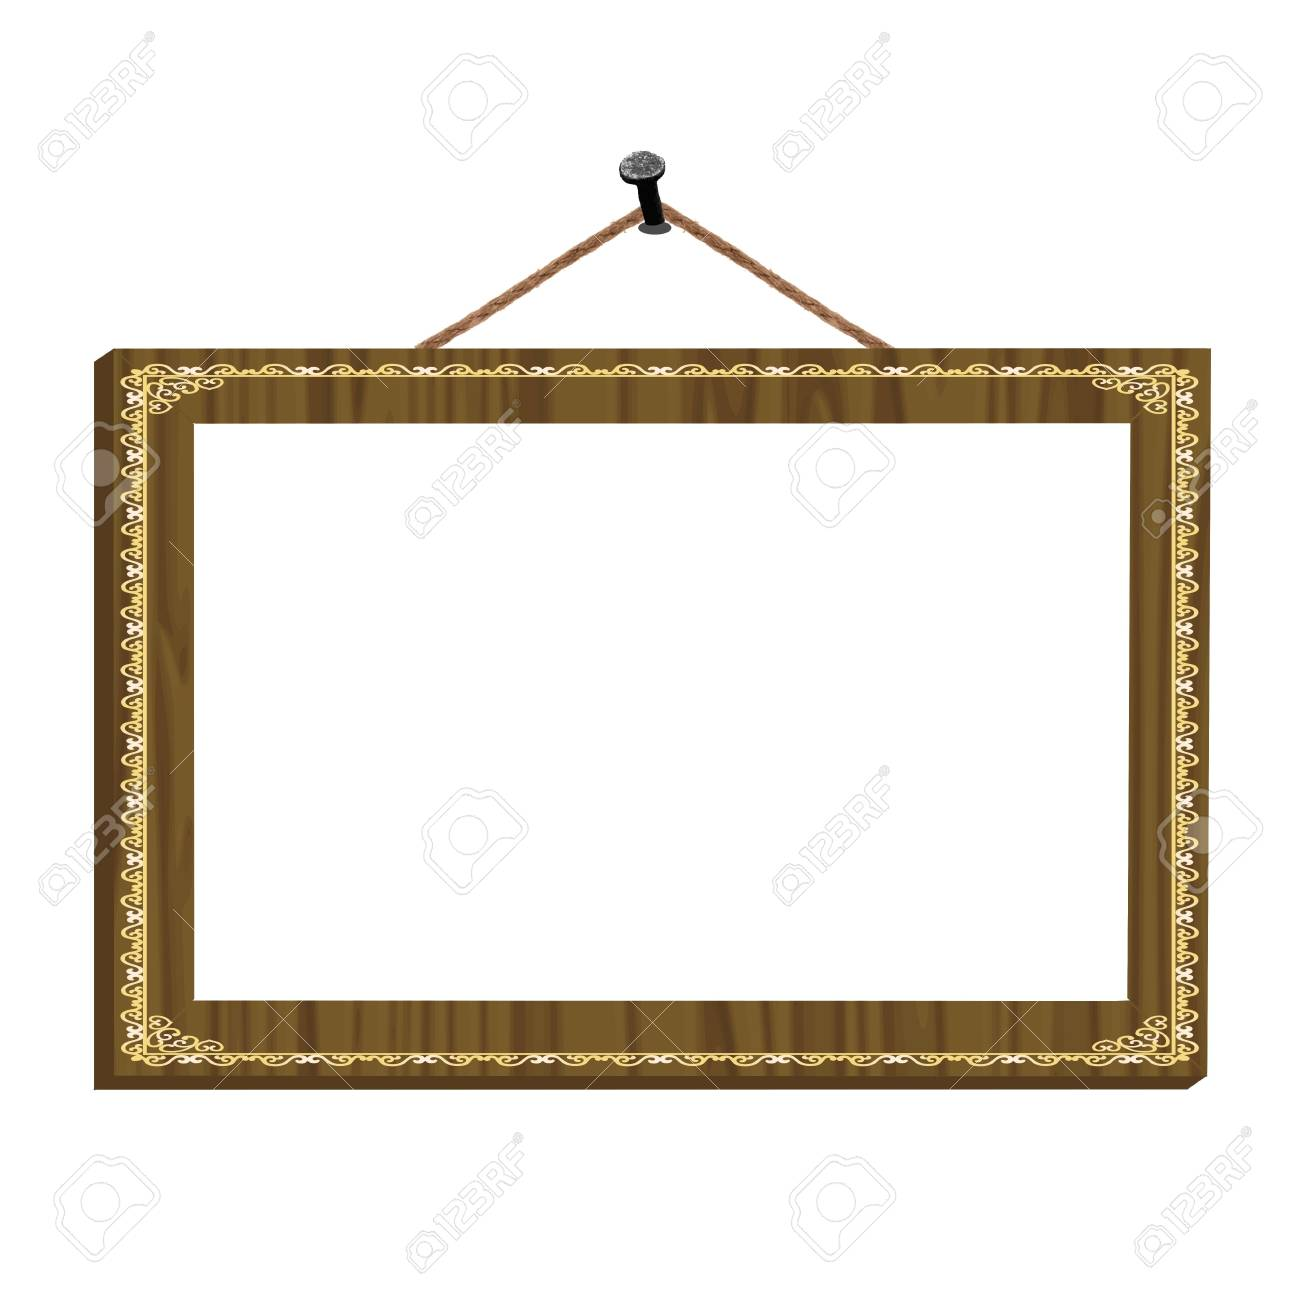 wooden frame with vintage ornament on the nail for image or text - vector Stock Vector - 13285795